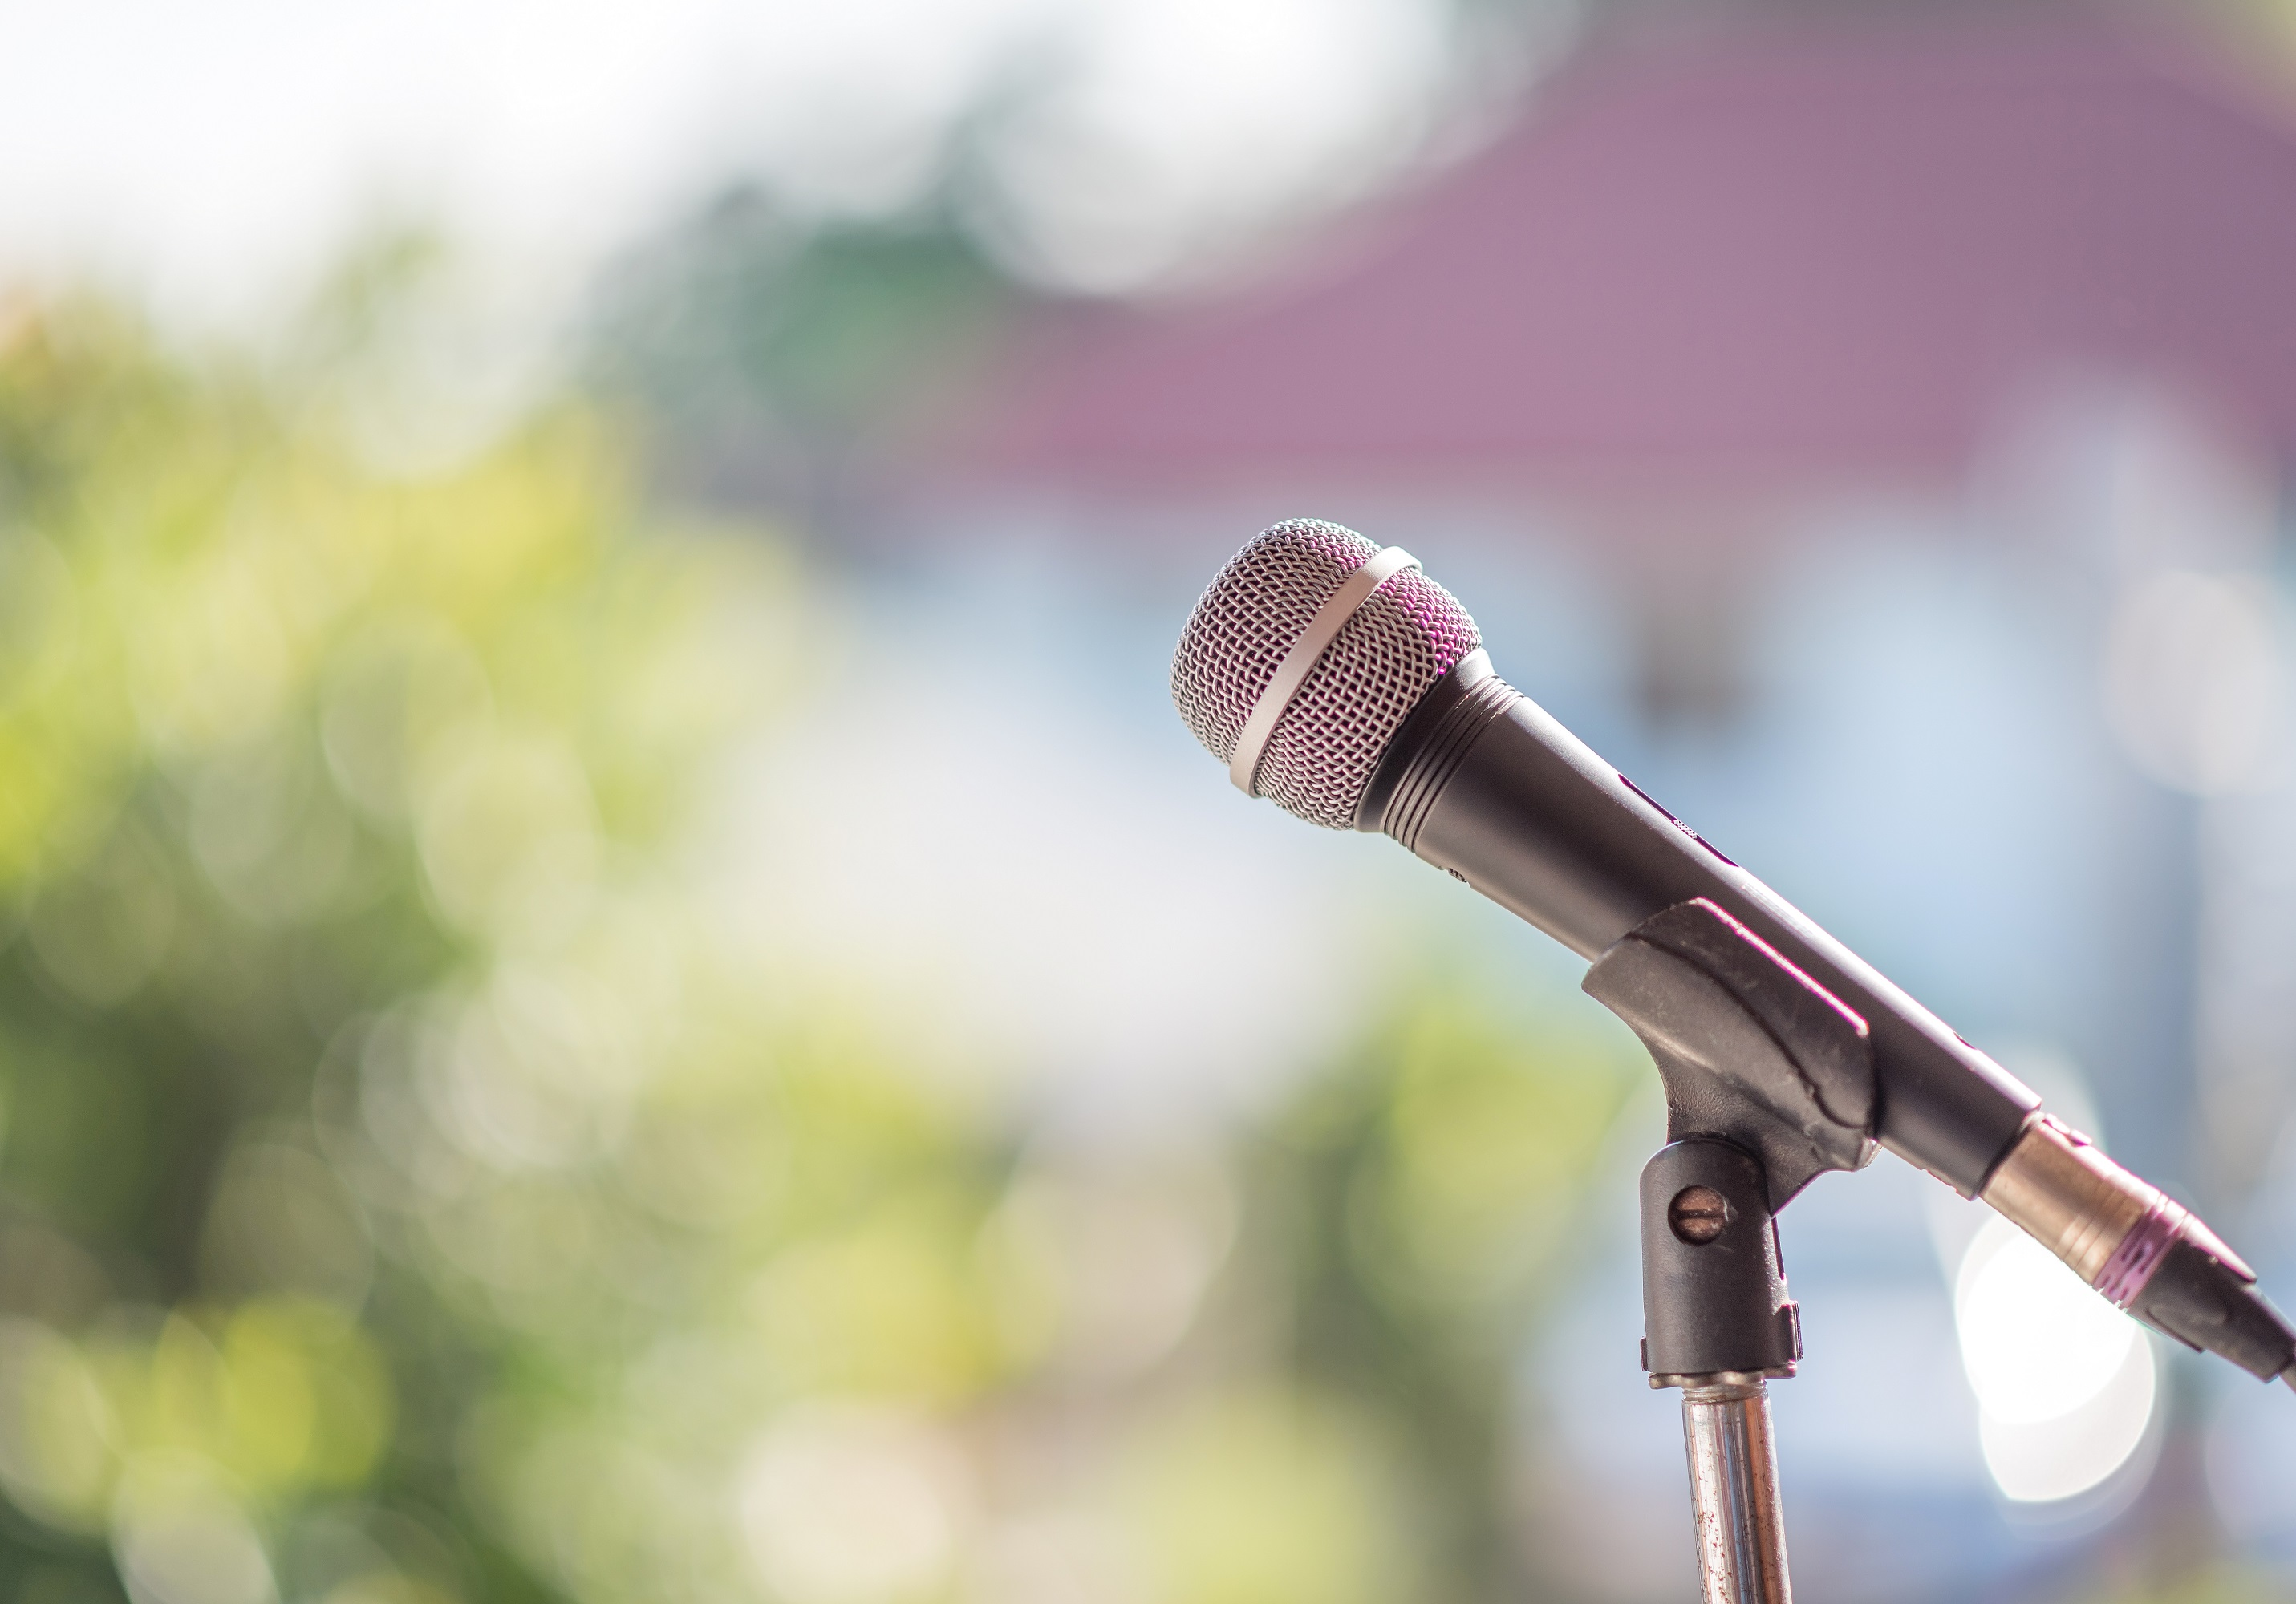 Microphone Closeup Blurred Outdoor Background